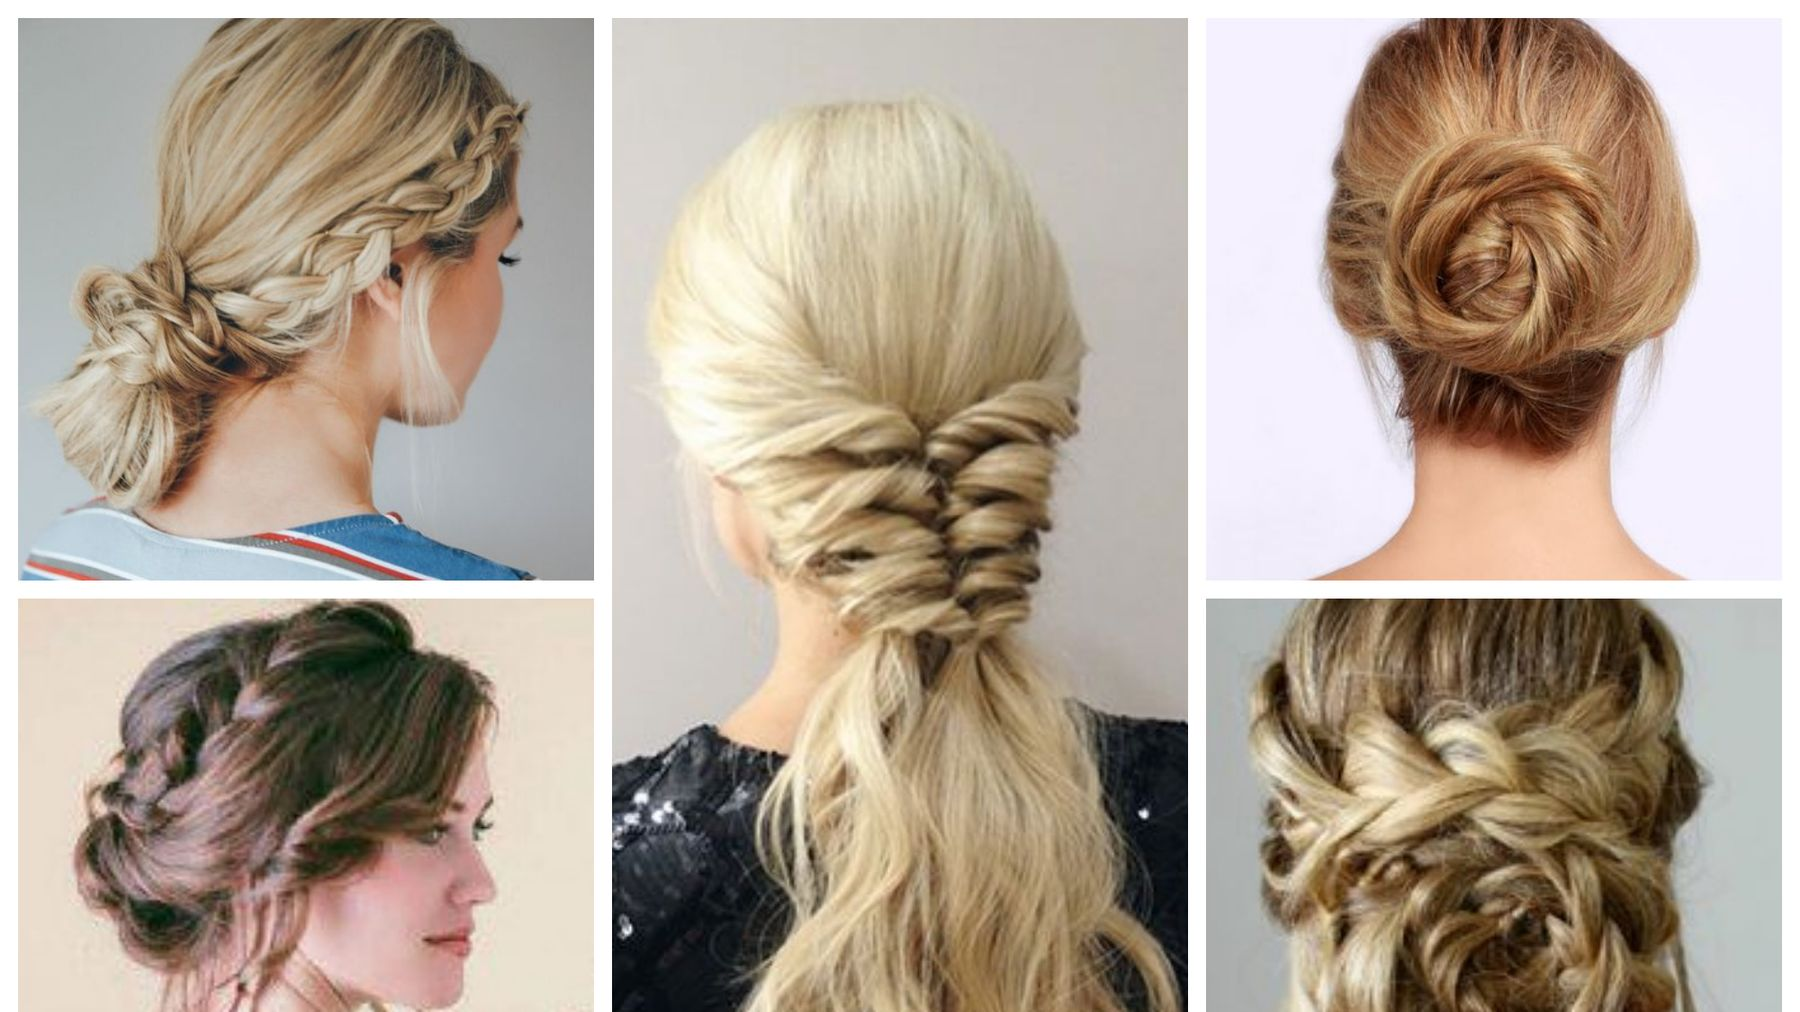 long hair updos: 9 of the best pinterest tutorials | grazia